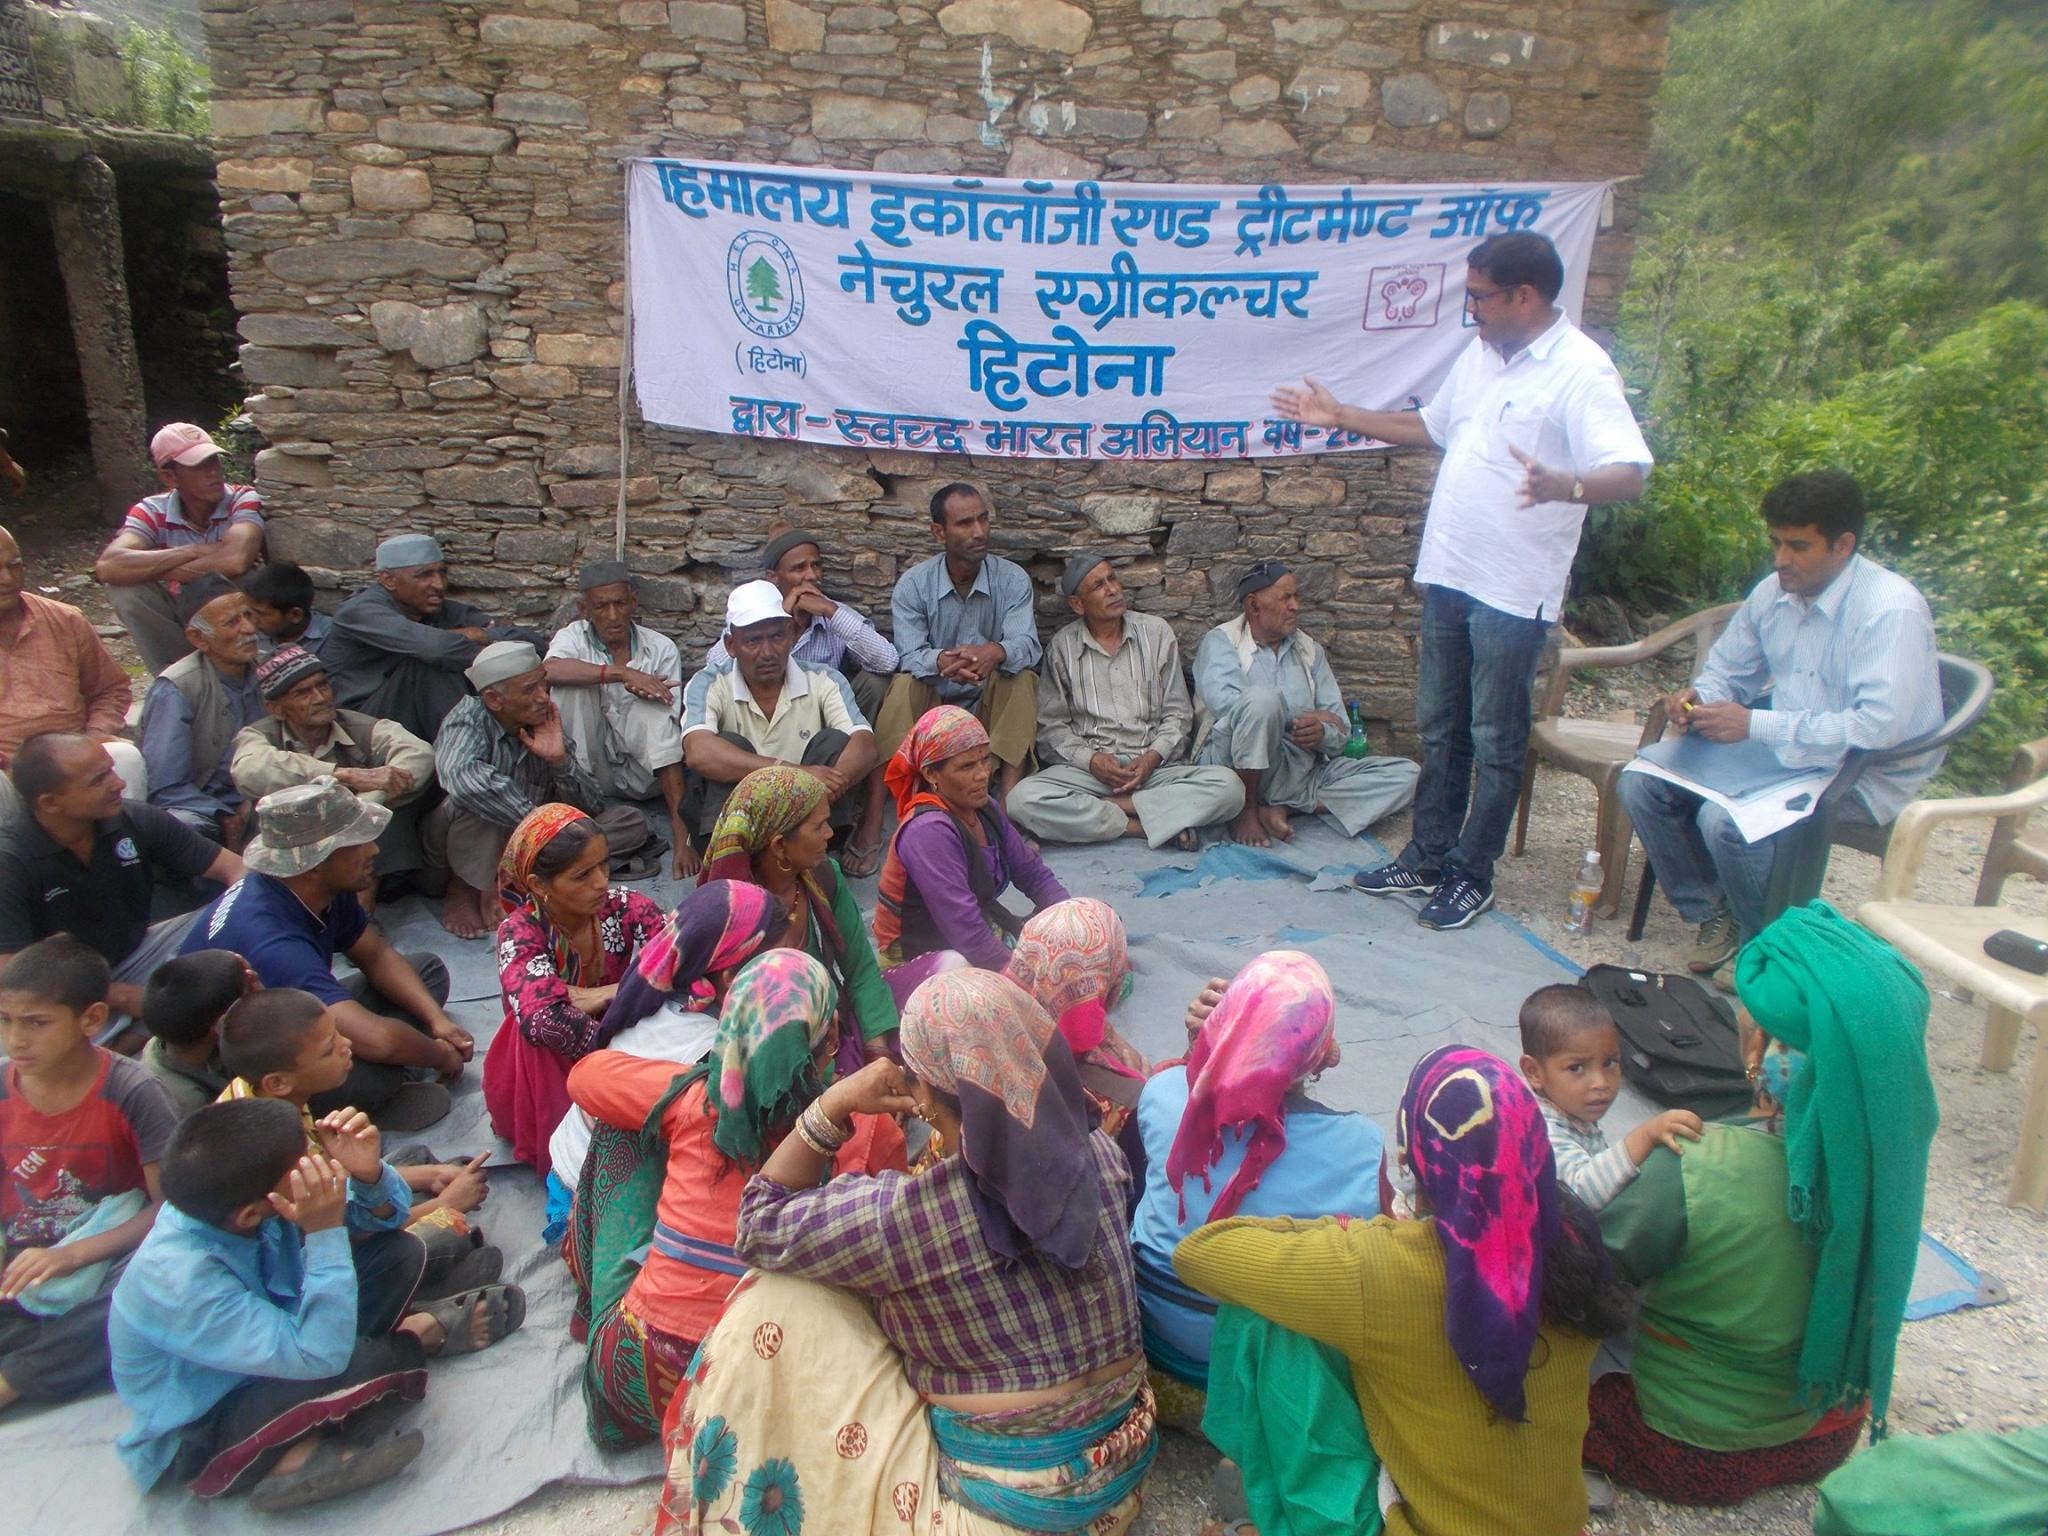 Livelihood improvements project for Himalayas (LIPH)